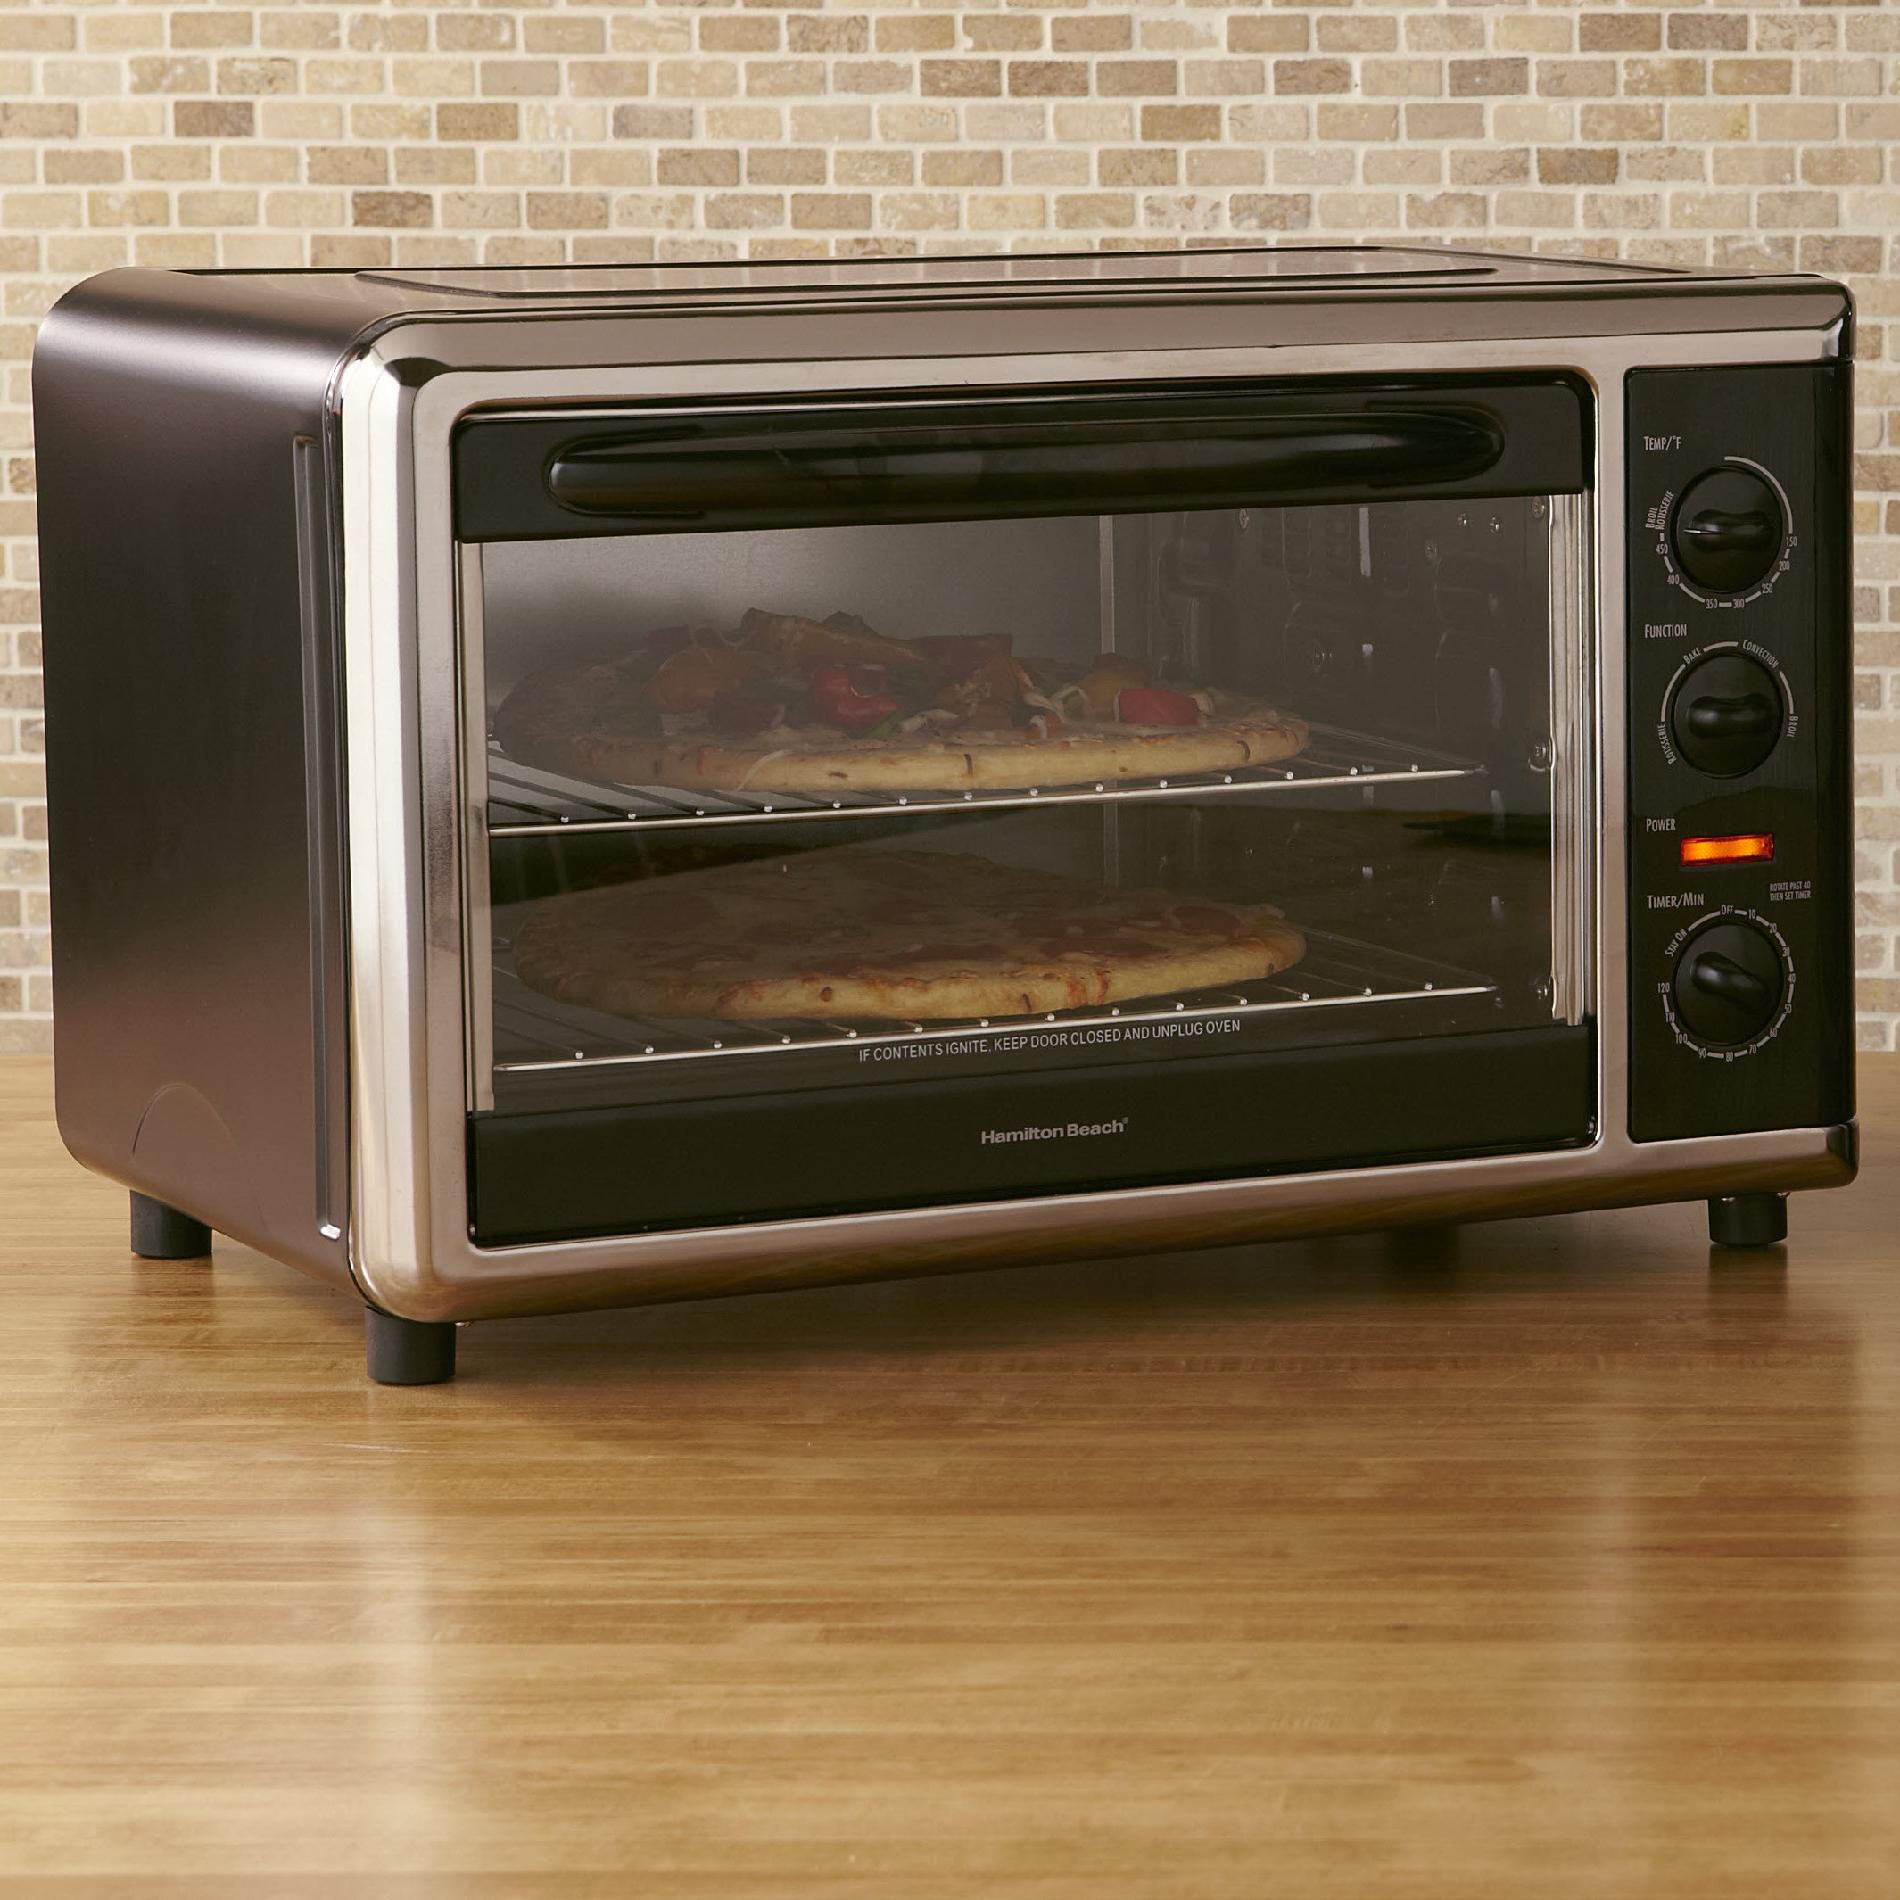 Countertop Rotisserie Ovens Hamilton Beach Brands Inc Large Countertop Oven